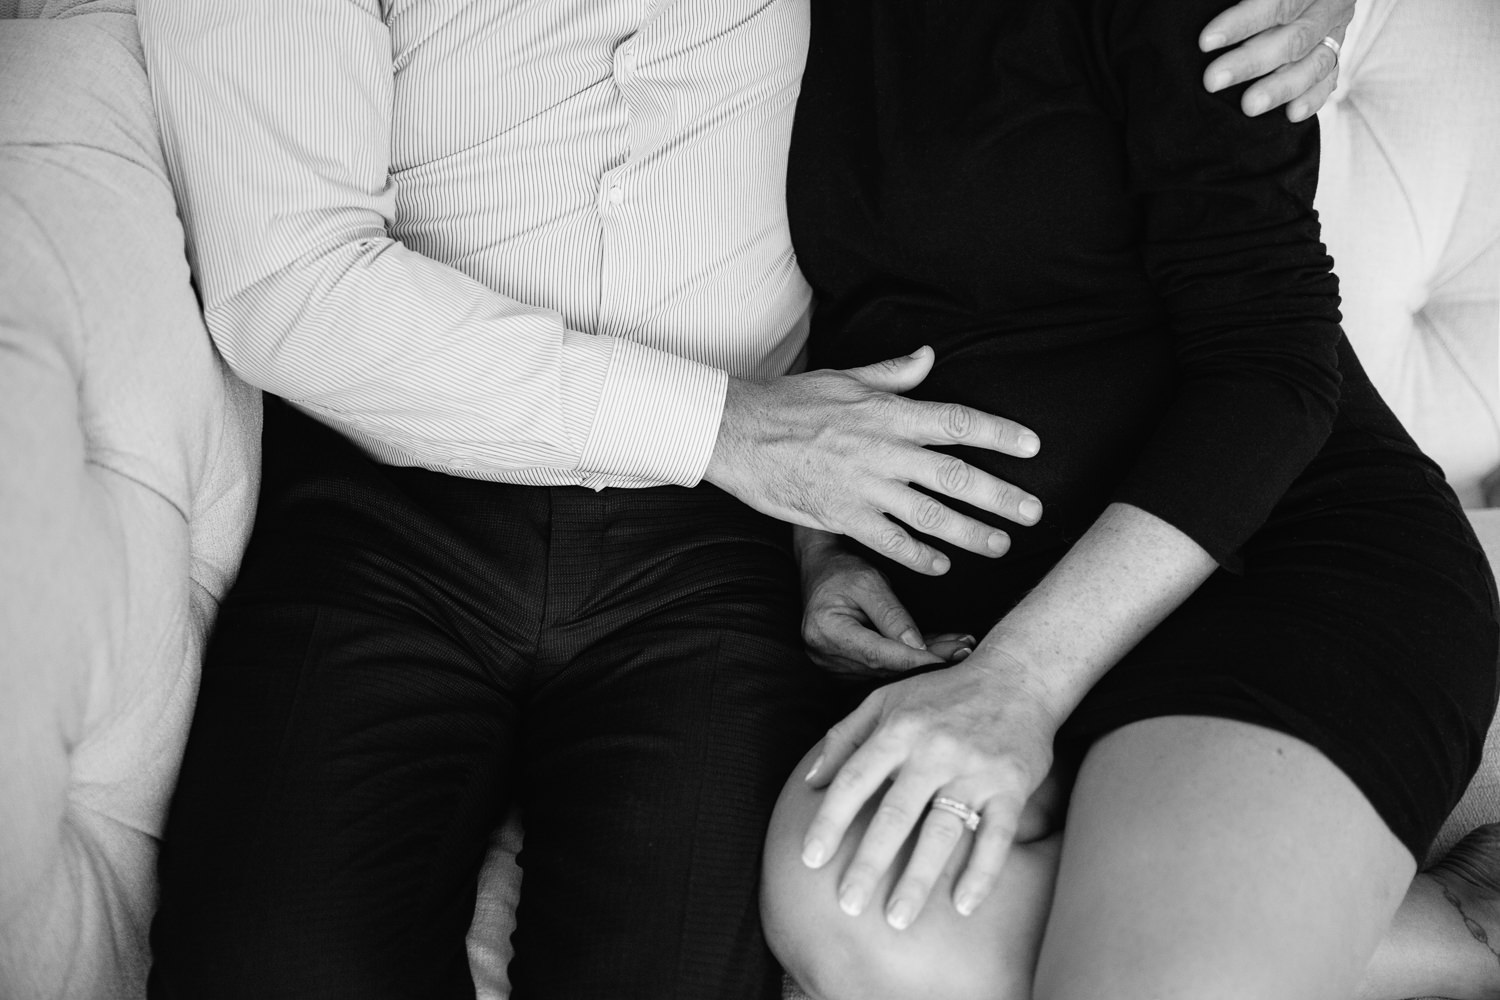 couple sitting together on couch, husband's hand on pregnant wife's belly, woman wearing black dress - Markham In-Home Photography